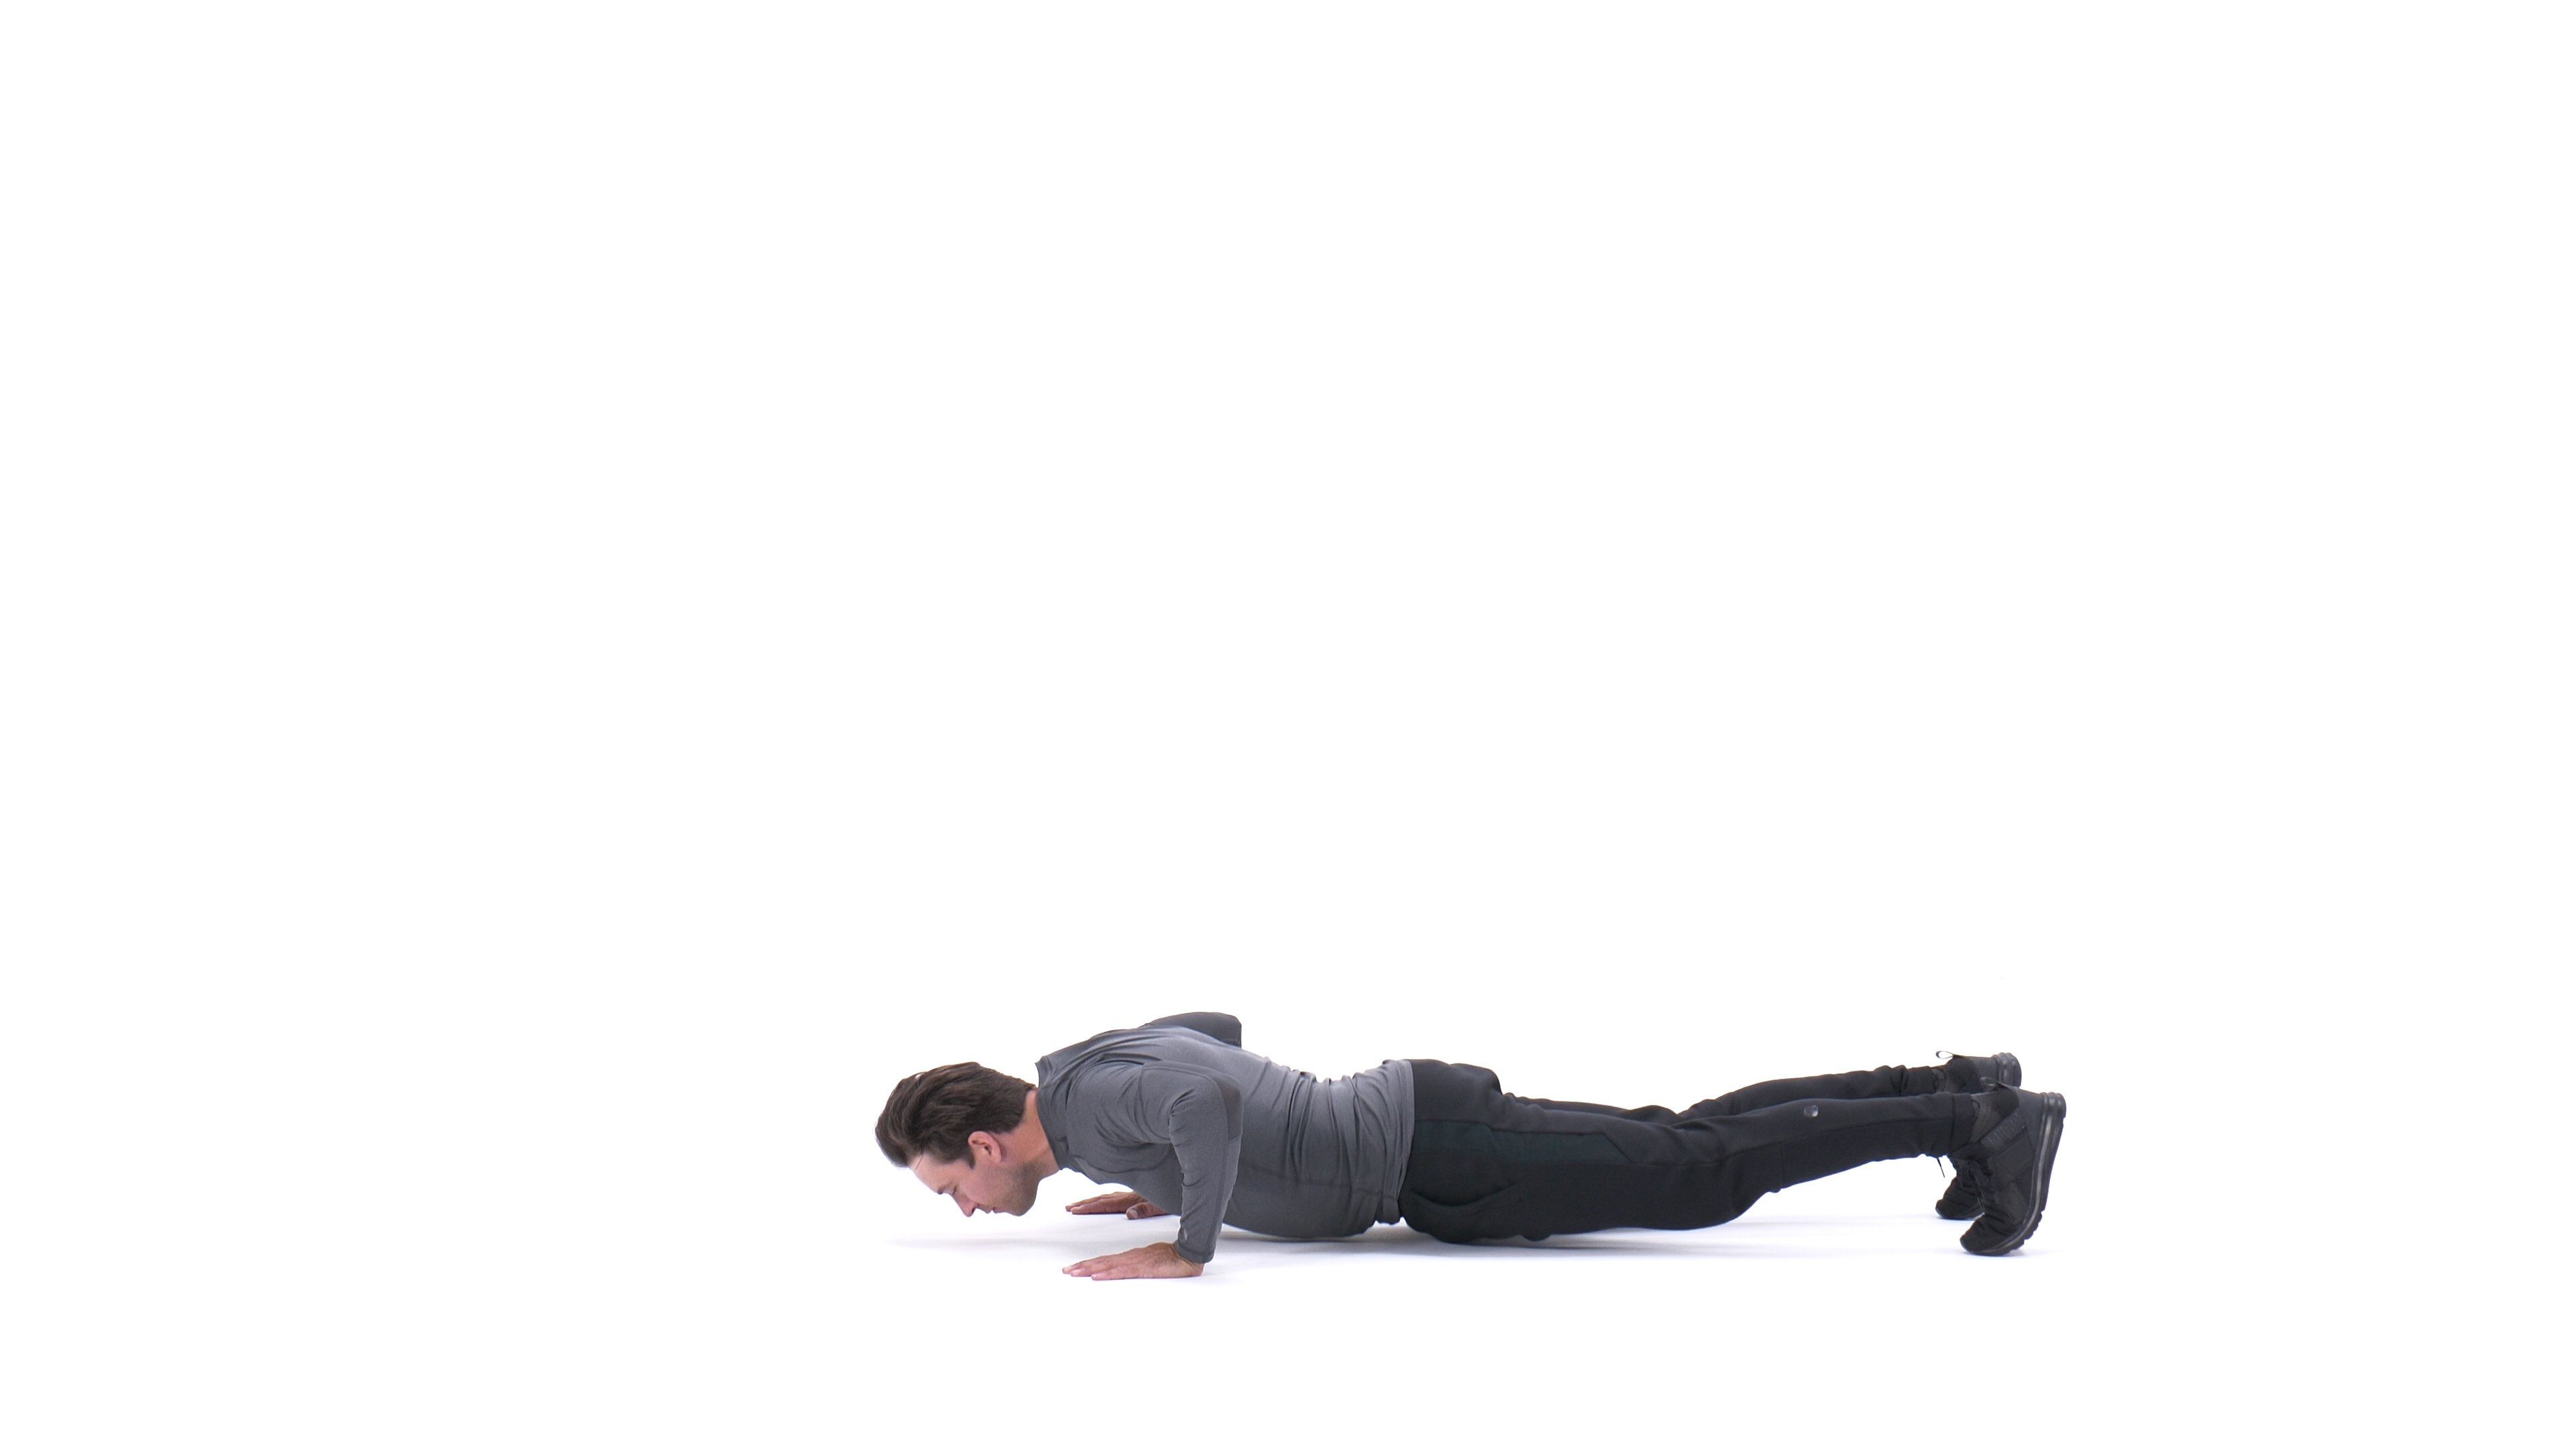 Clapping Push-Up image